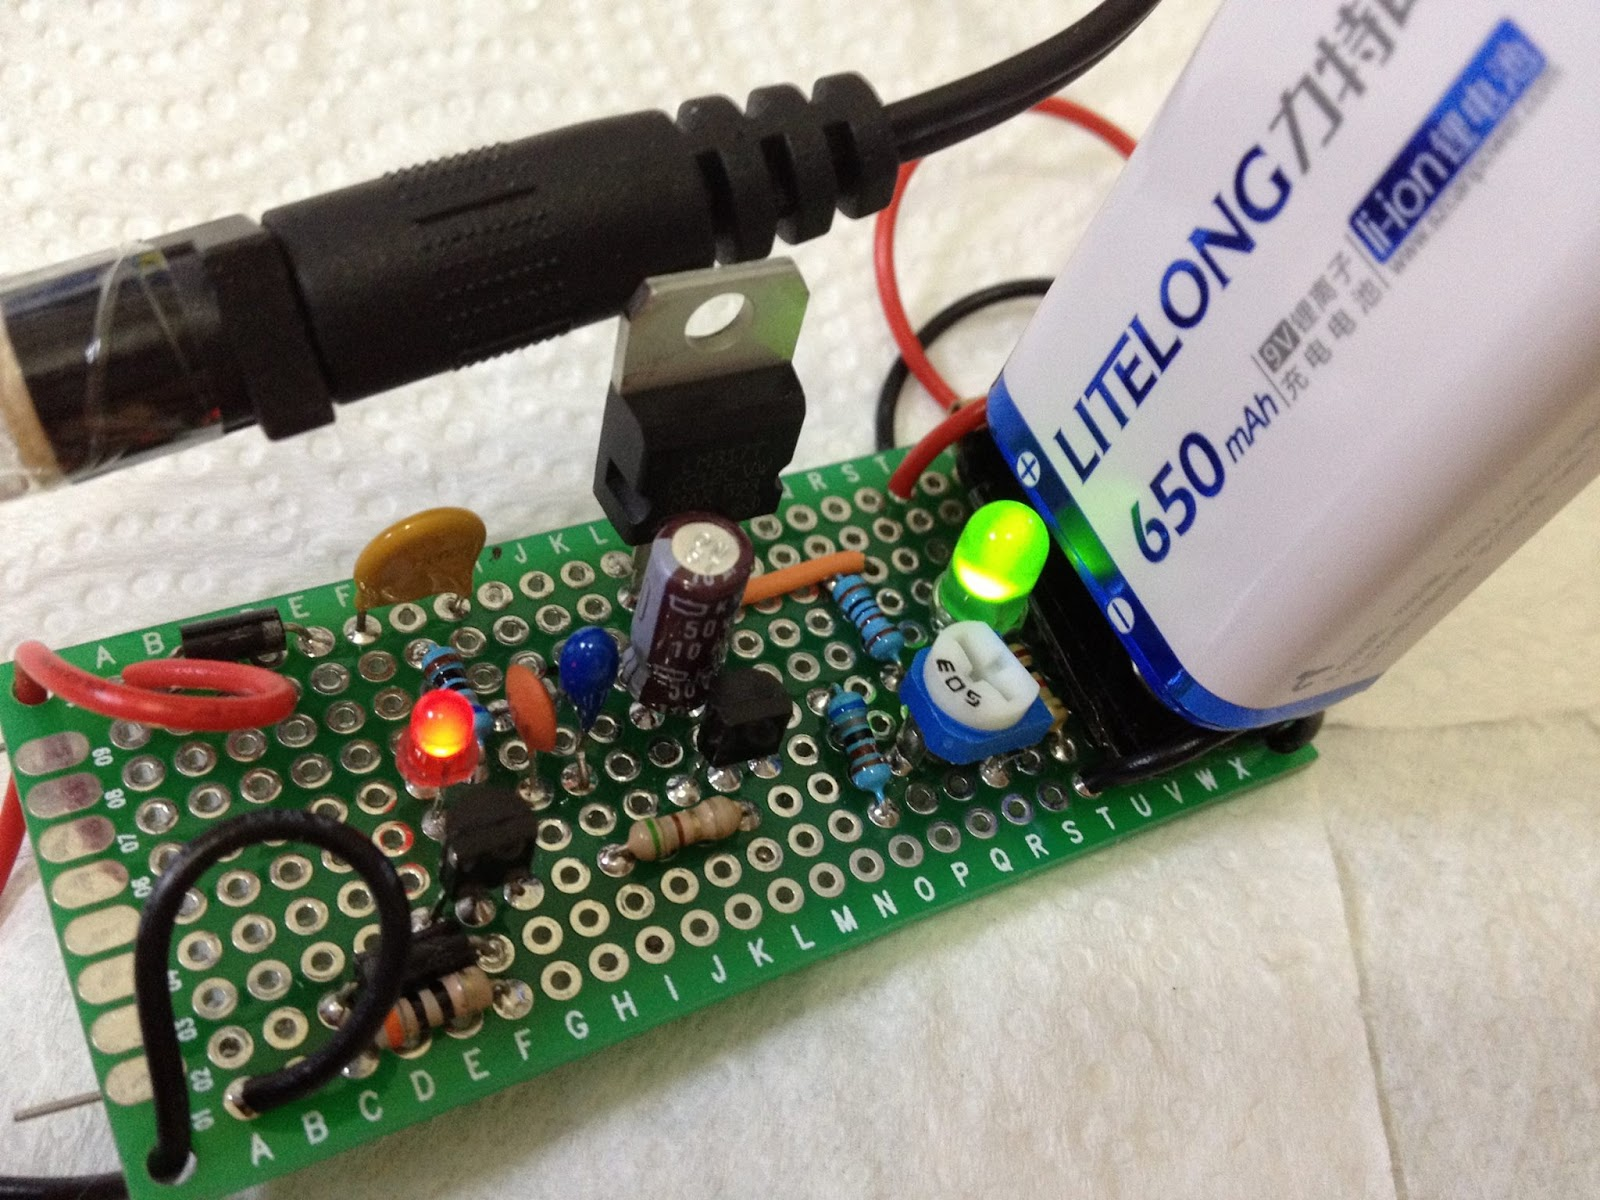 Make A 6v 4ah Automatic Battery Charger Circuit Without Using A Relay